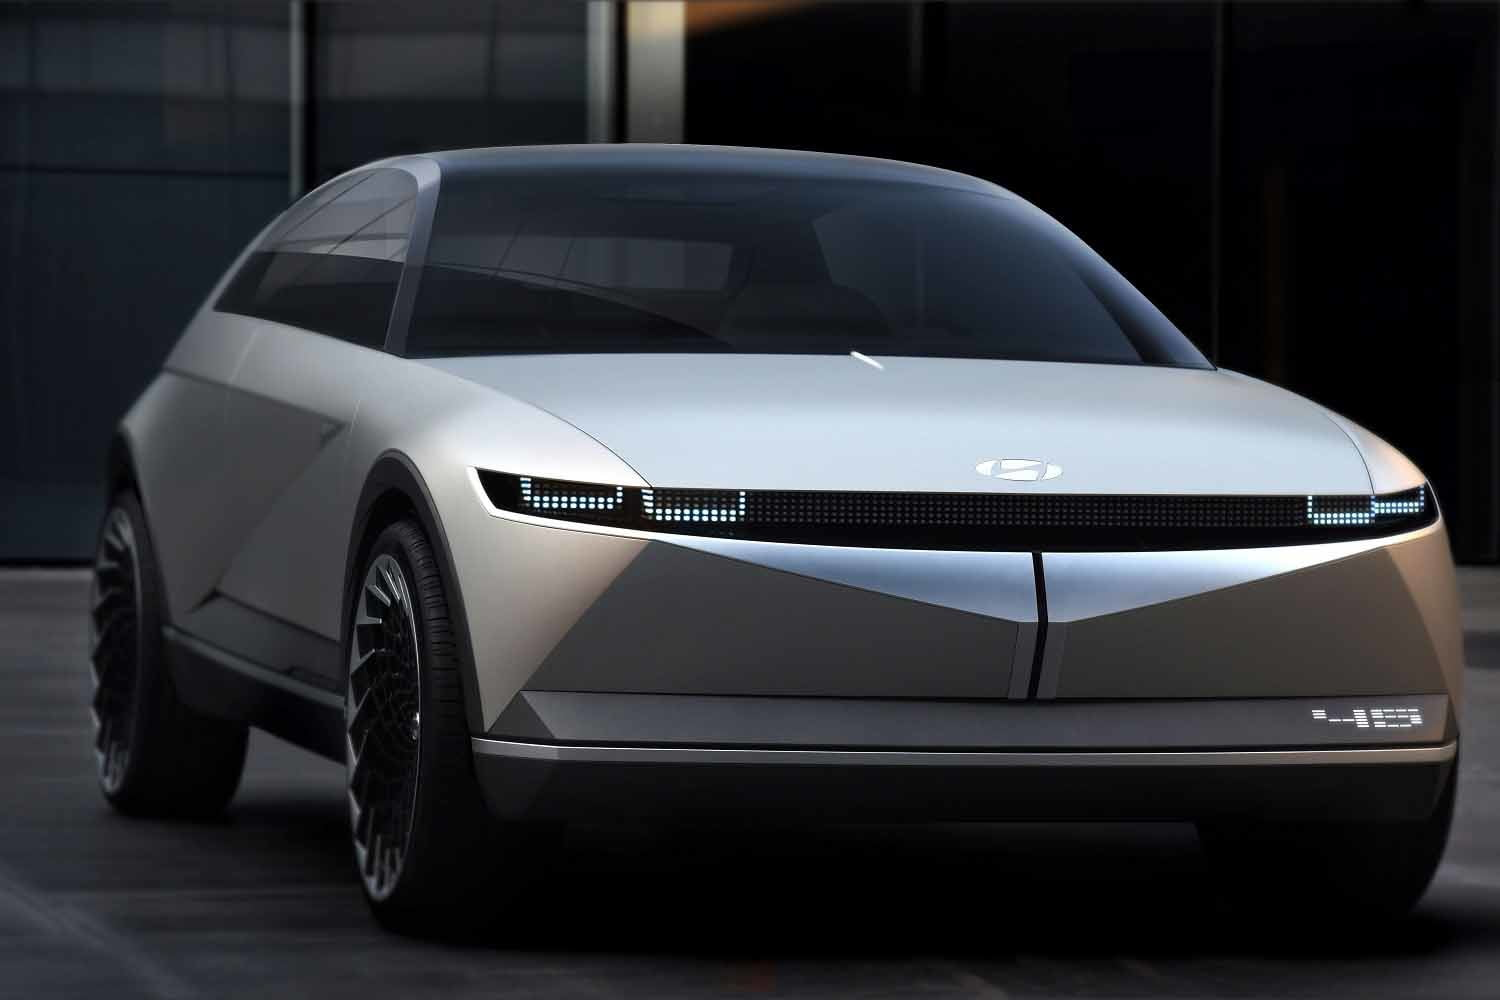 The Hyundai 45 is a heritage-laced, forward-thinking concept car